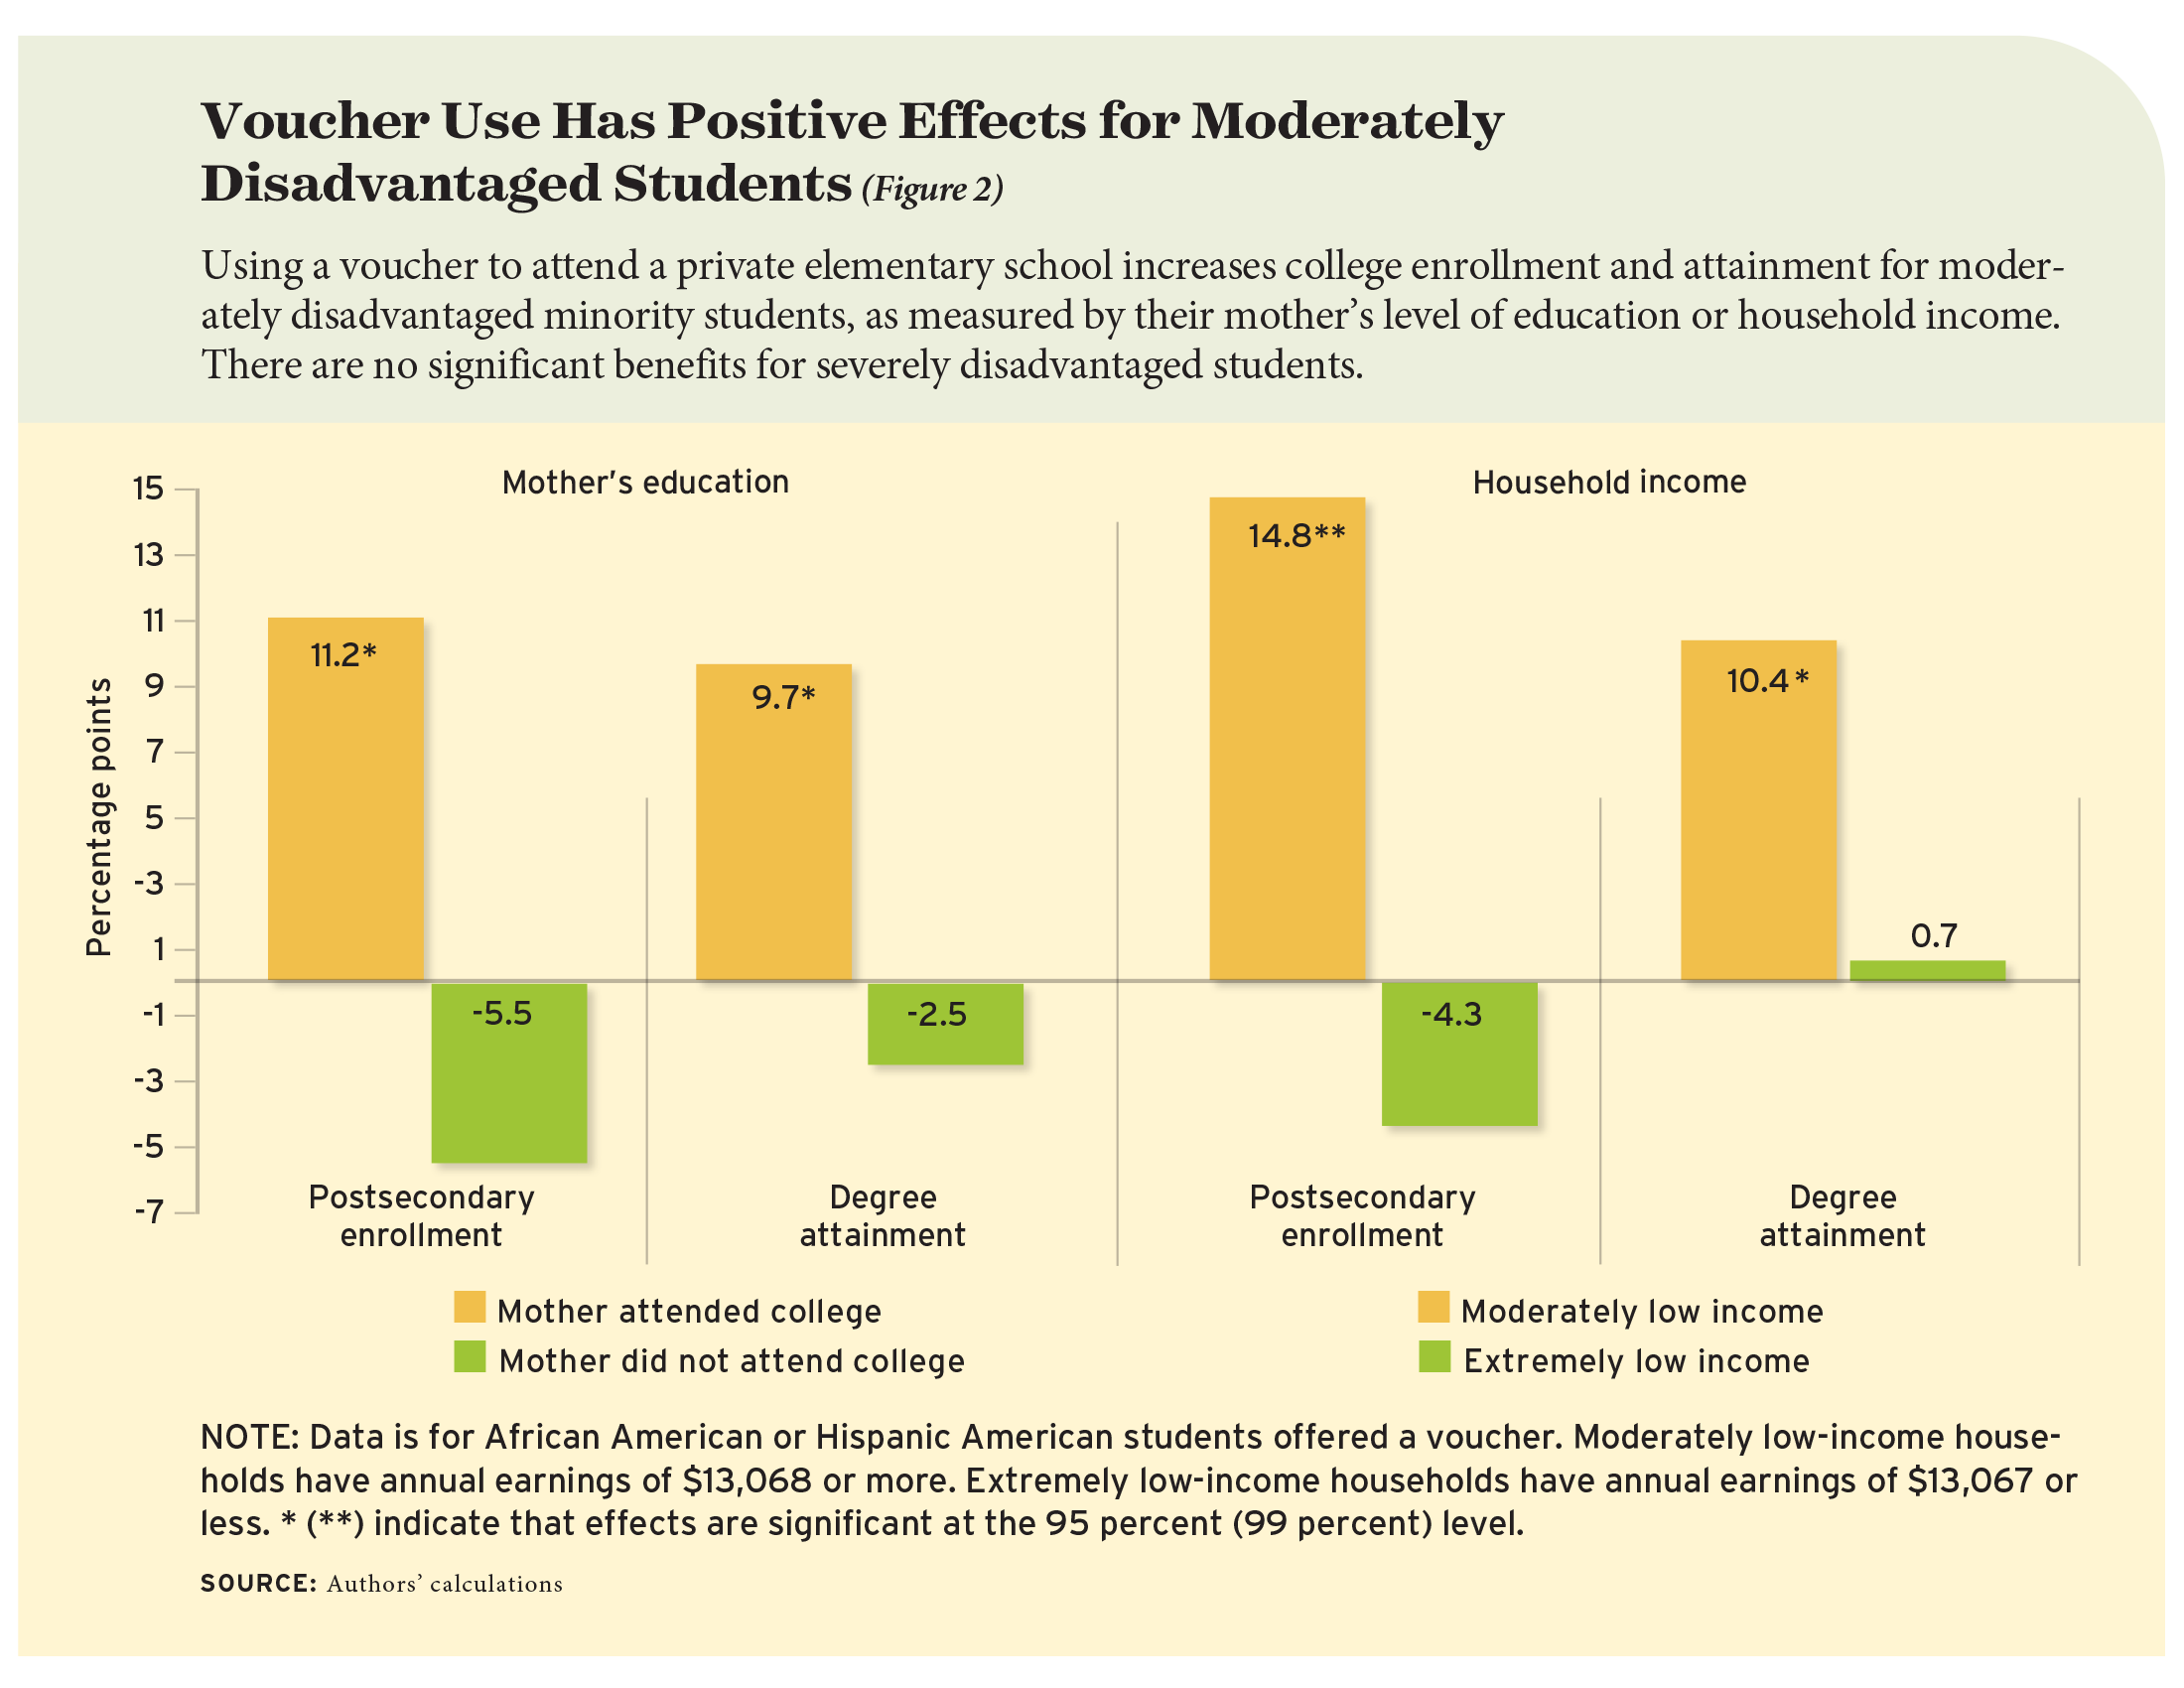 Figure 2: Voucher Use Has Positive Effects for Moderately Disadvantaged Students